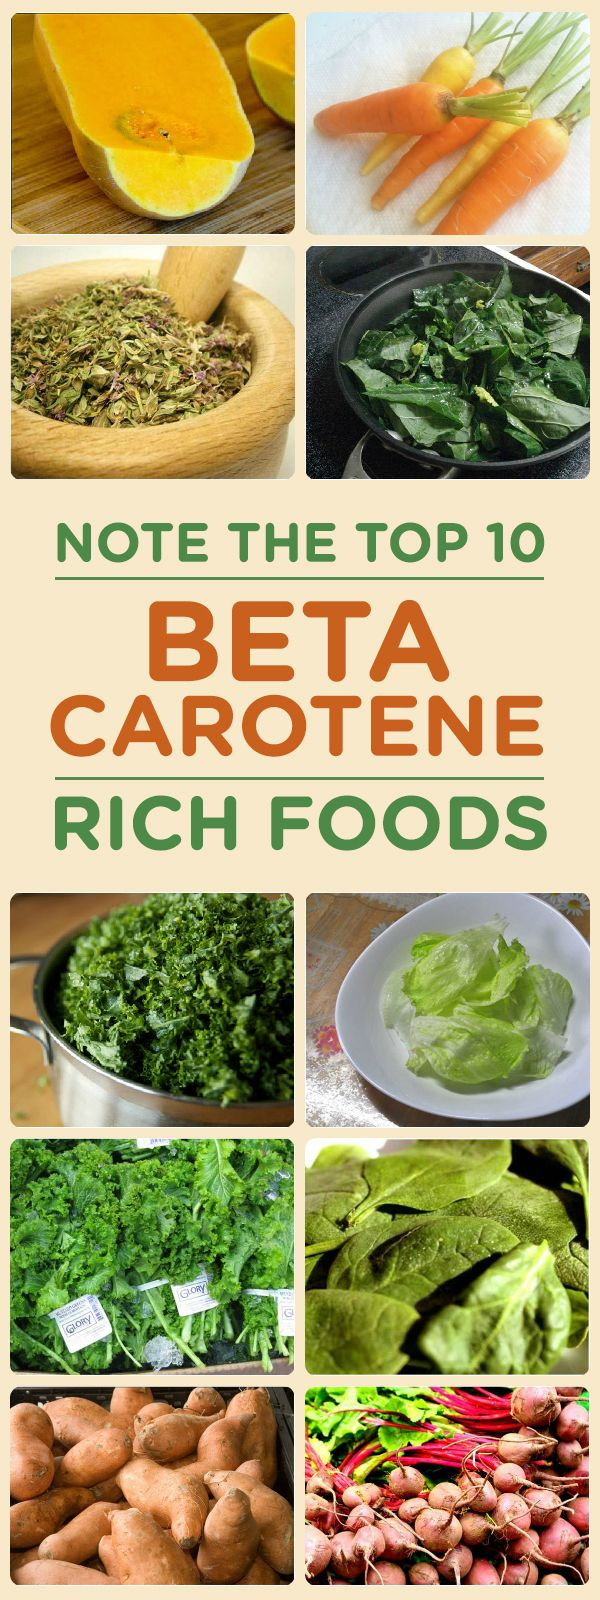 Beta carotene is an essential nutrient for various reasons for a healthy body. Here are the top 10 beta carotene foods that can add to your diet ...